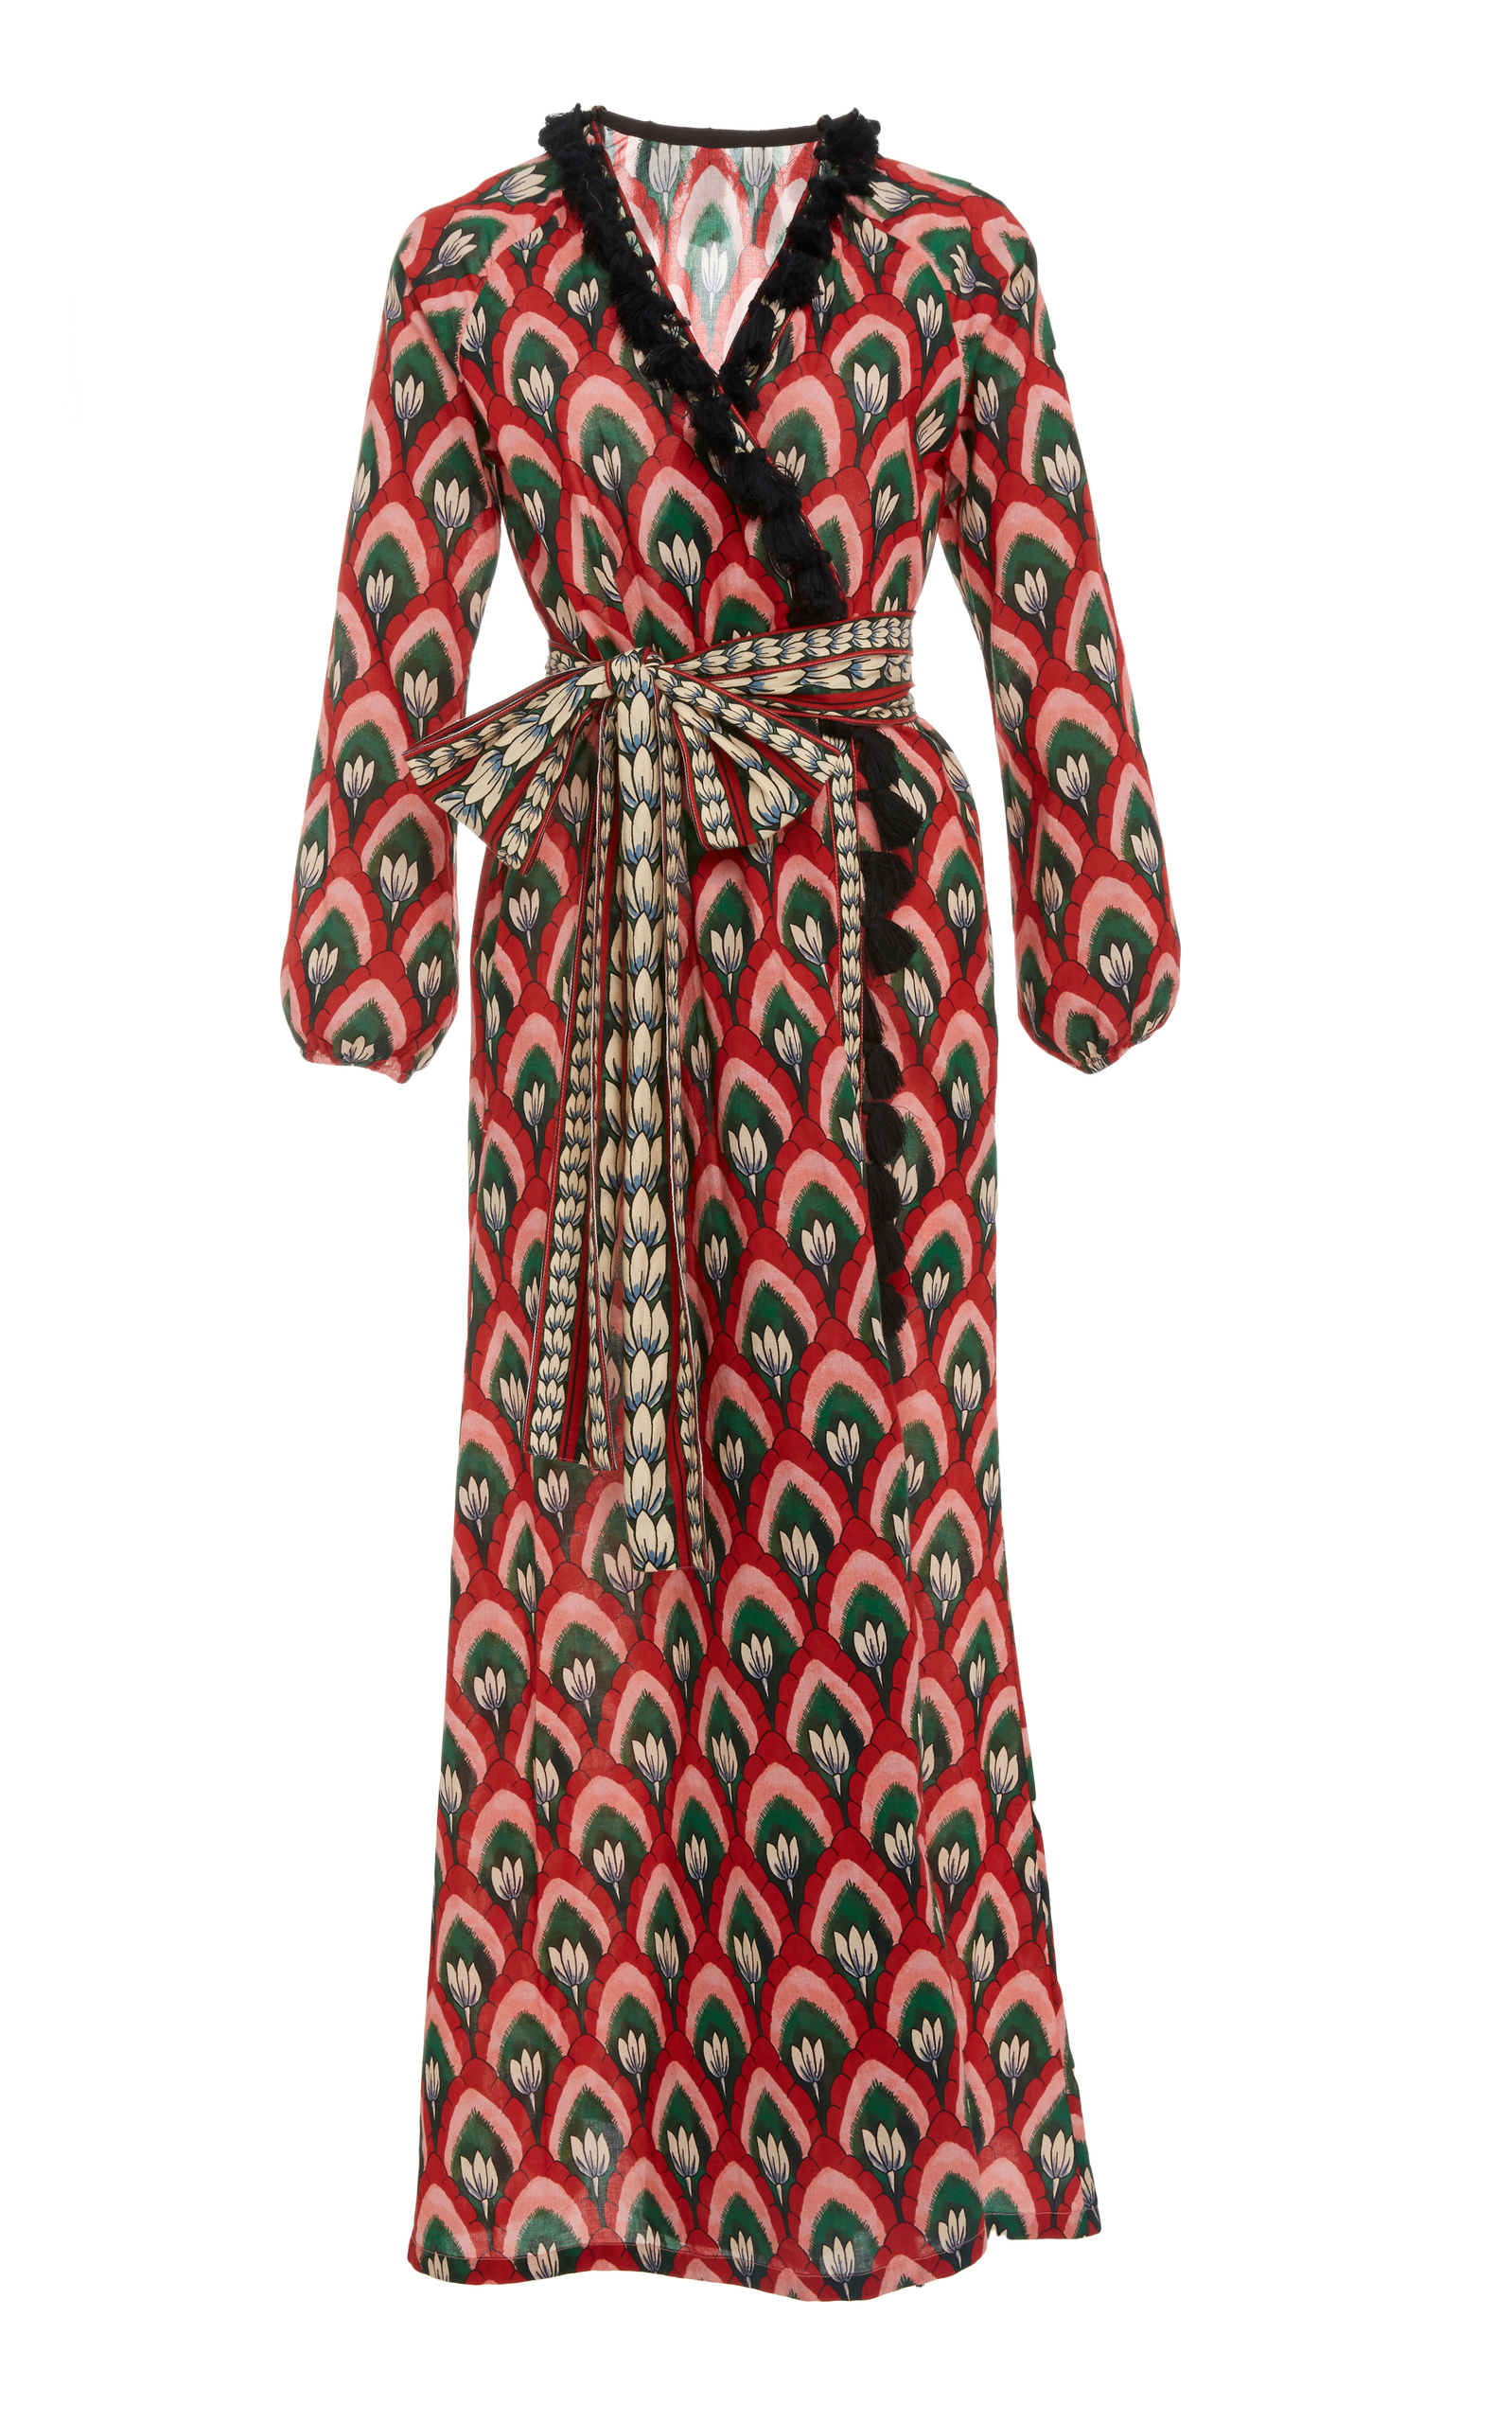 Lena Tassled Wrap Dress Rhode Resort Outlet Good Selling Cheap Cost Amazing View Sale Online tzZAxwvr3